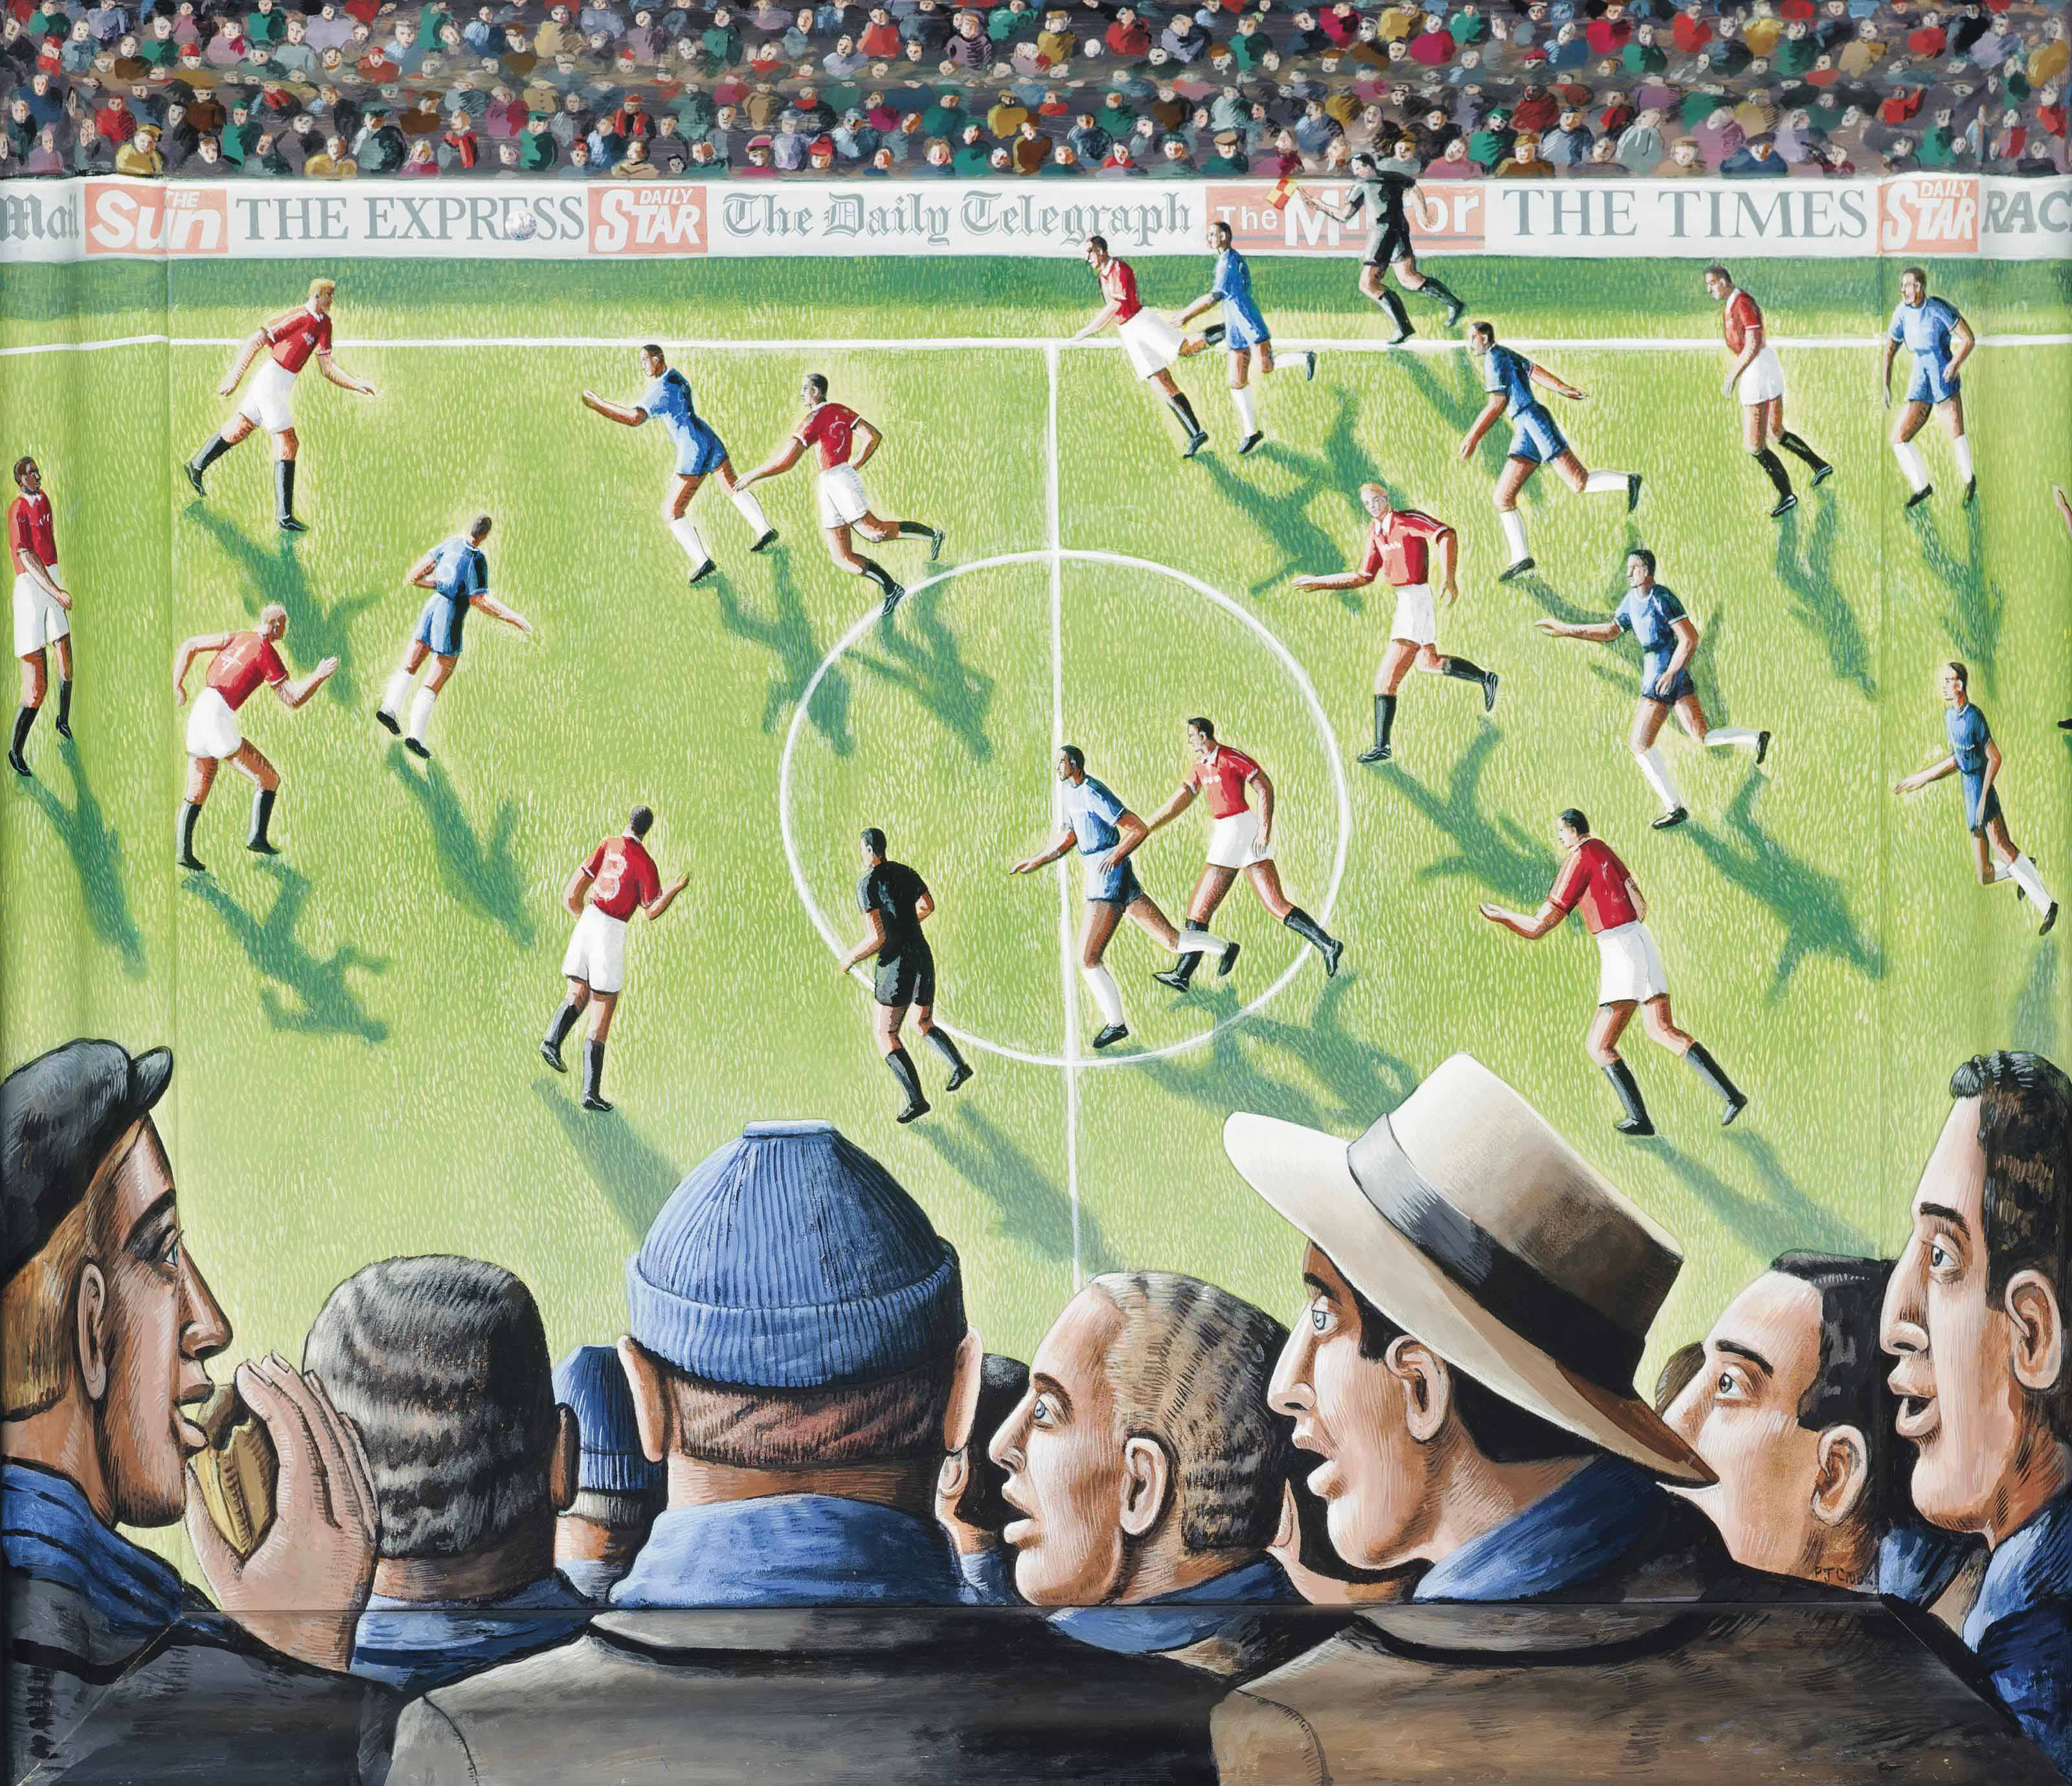 The Big Match (Chelsea vs. Manchester United)